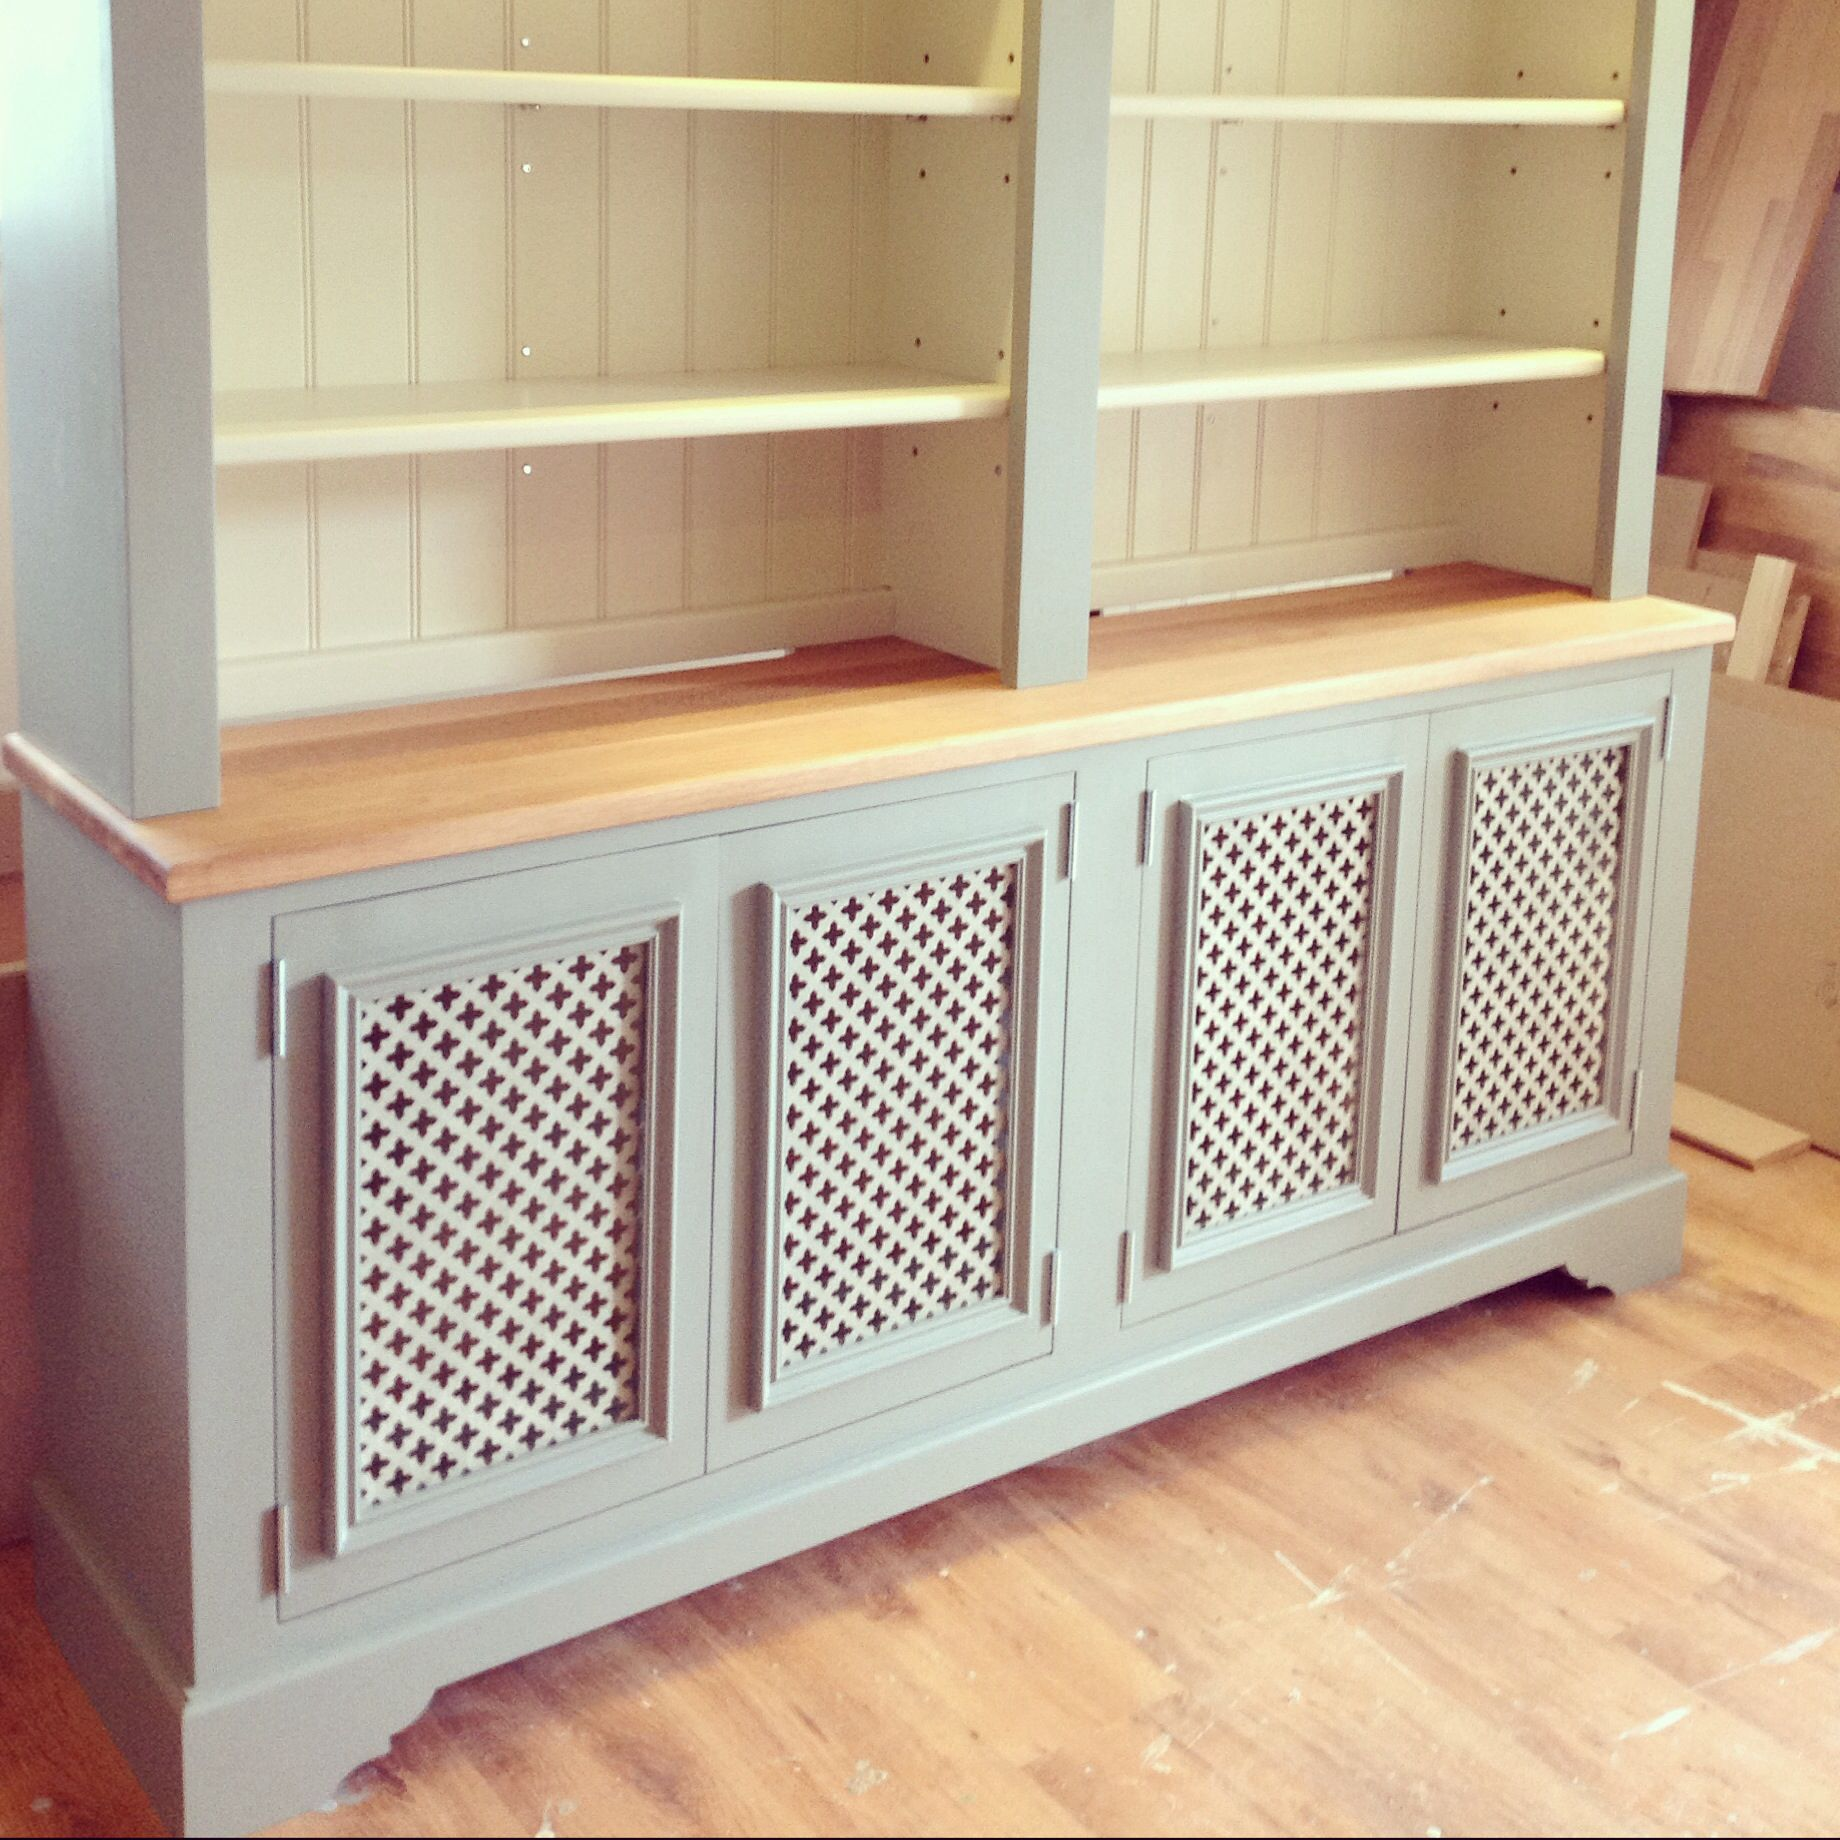 Radiator under kitchen cabinet - Radiator Cover Dresser Painted In Farrow Ball Lime White Pigeon